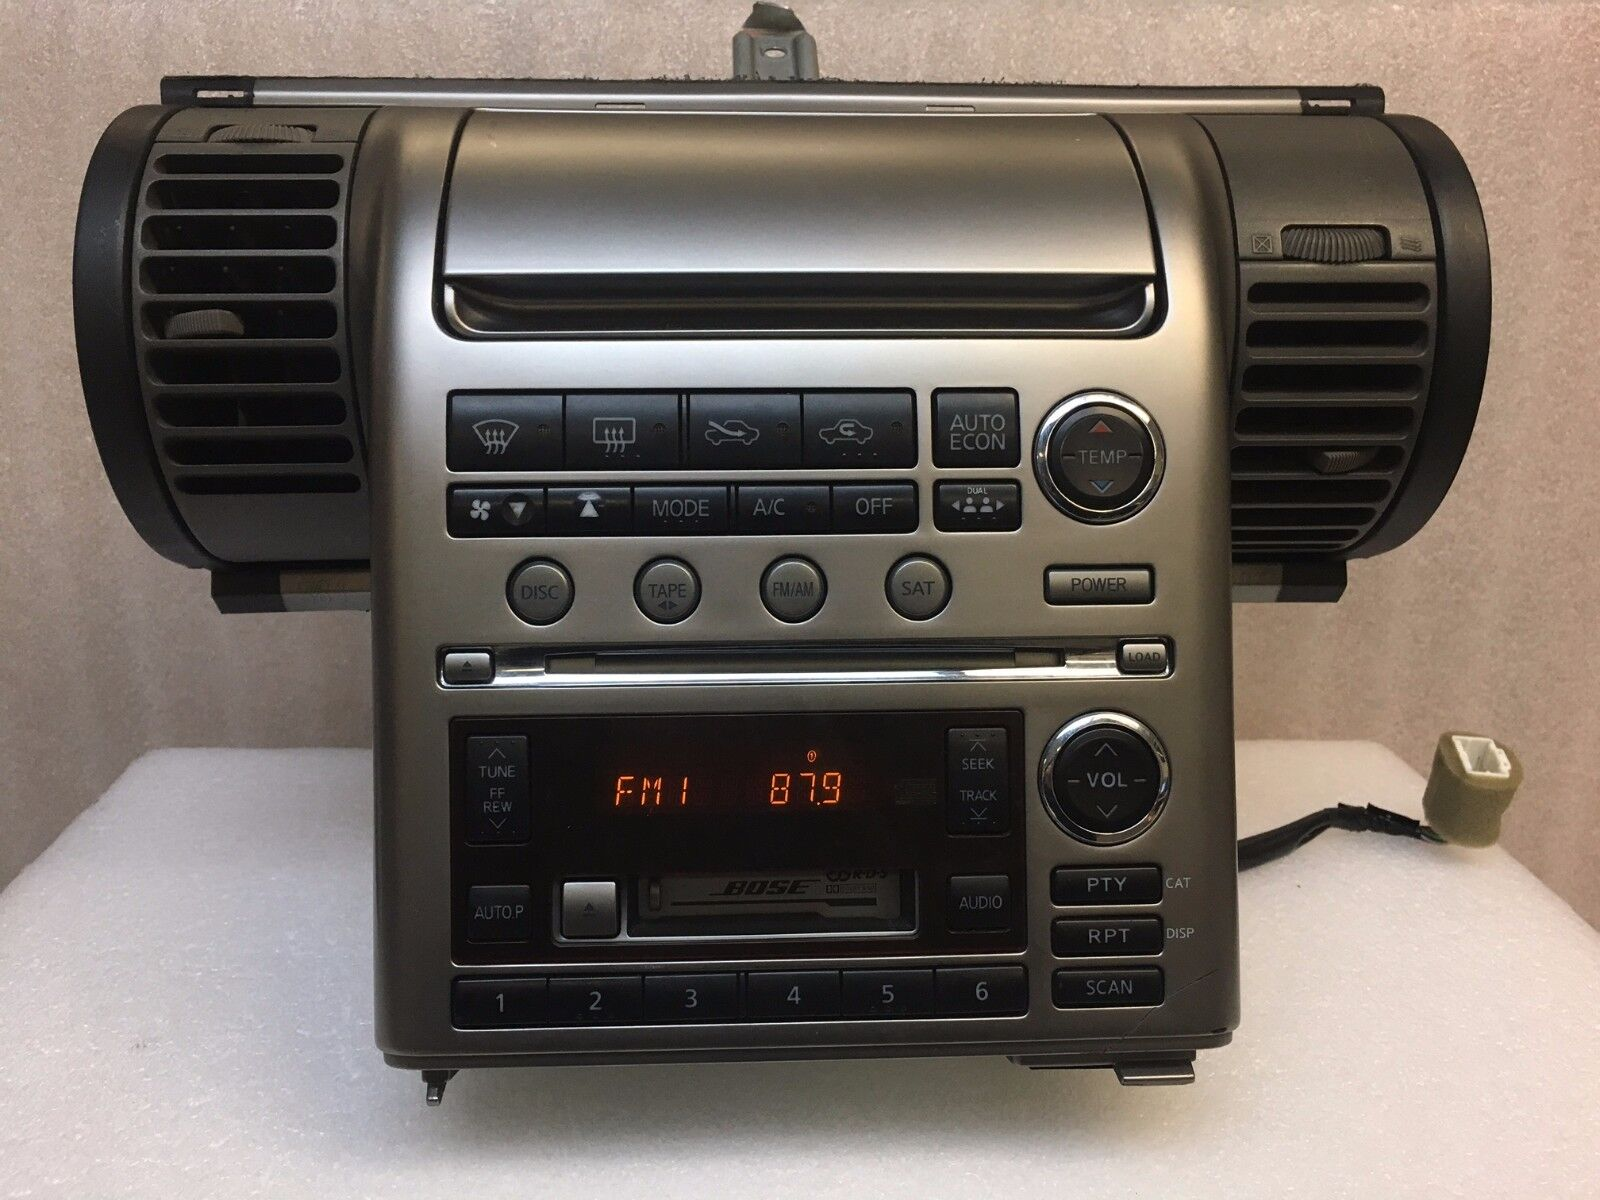 20+ Bose 6 Disc Cd Changer Pictures and Ideas on Meta Networks